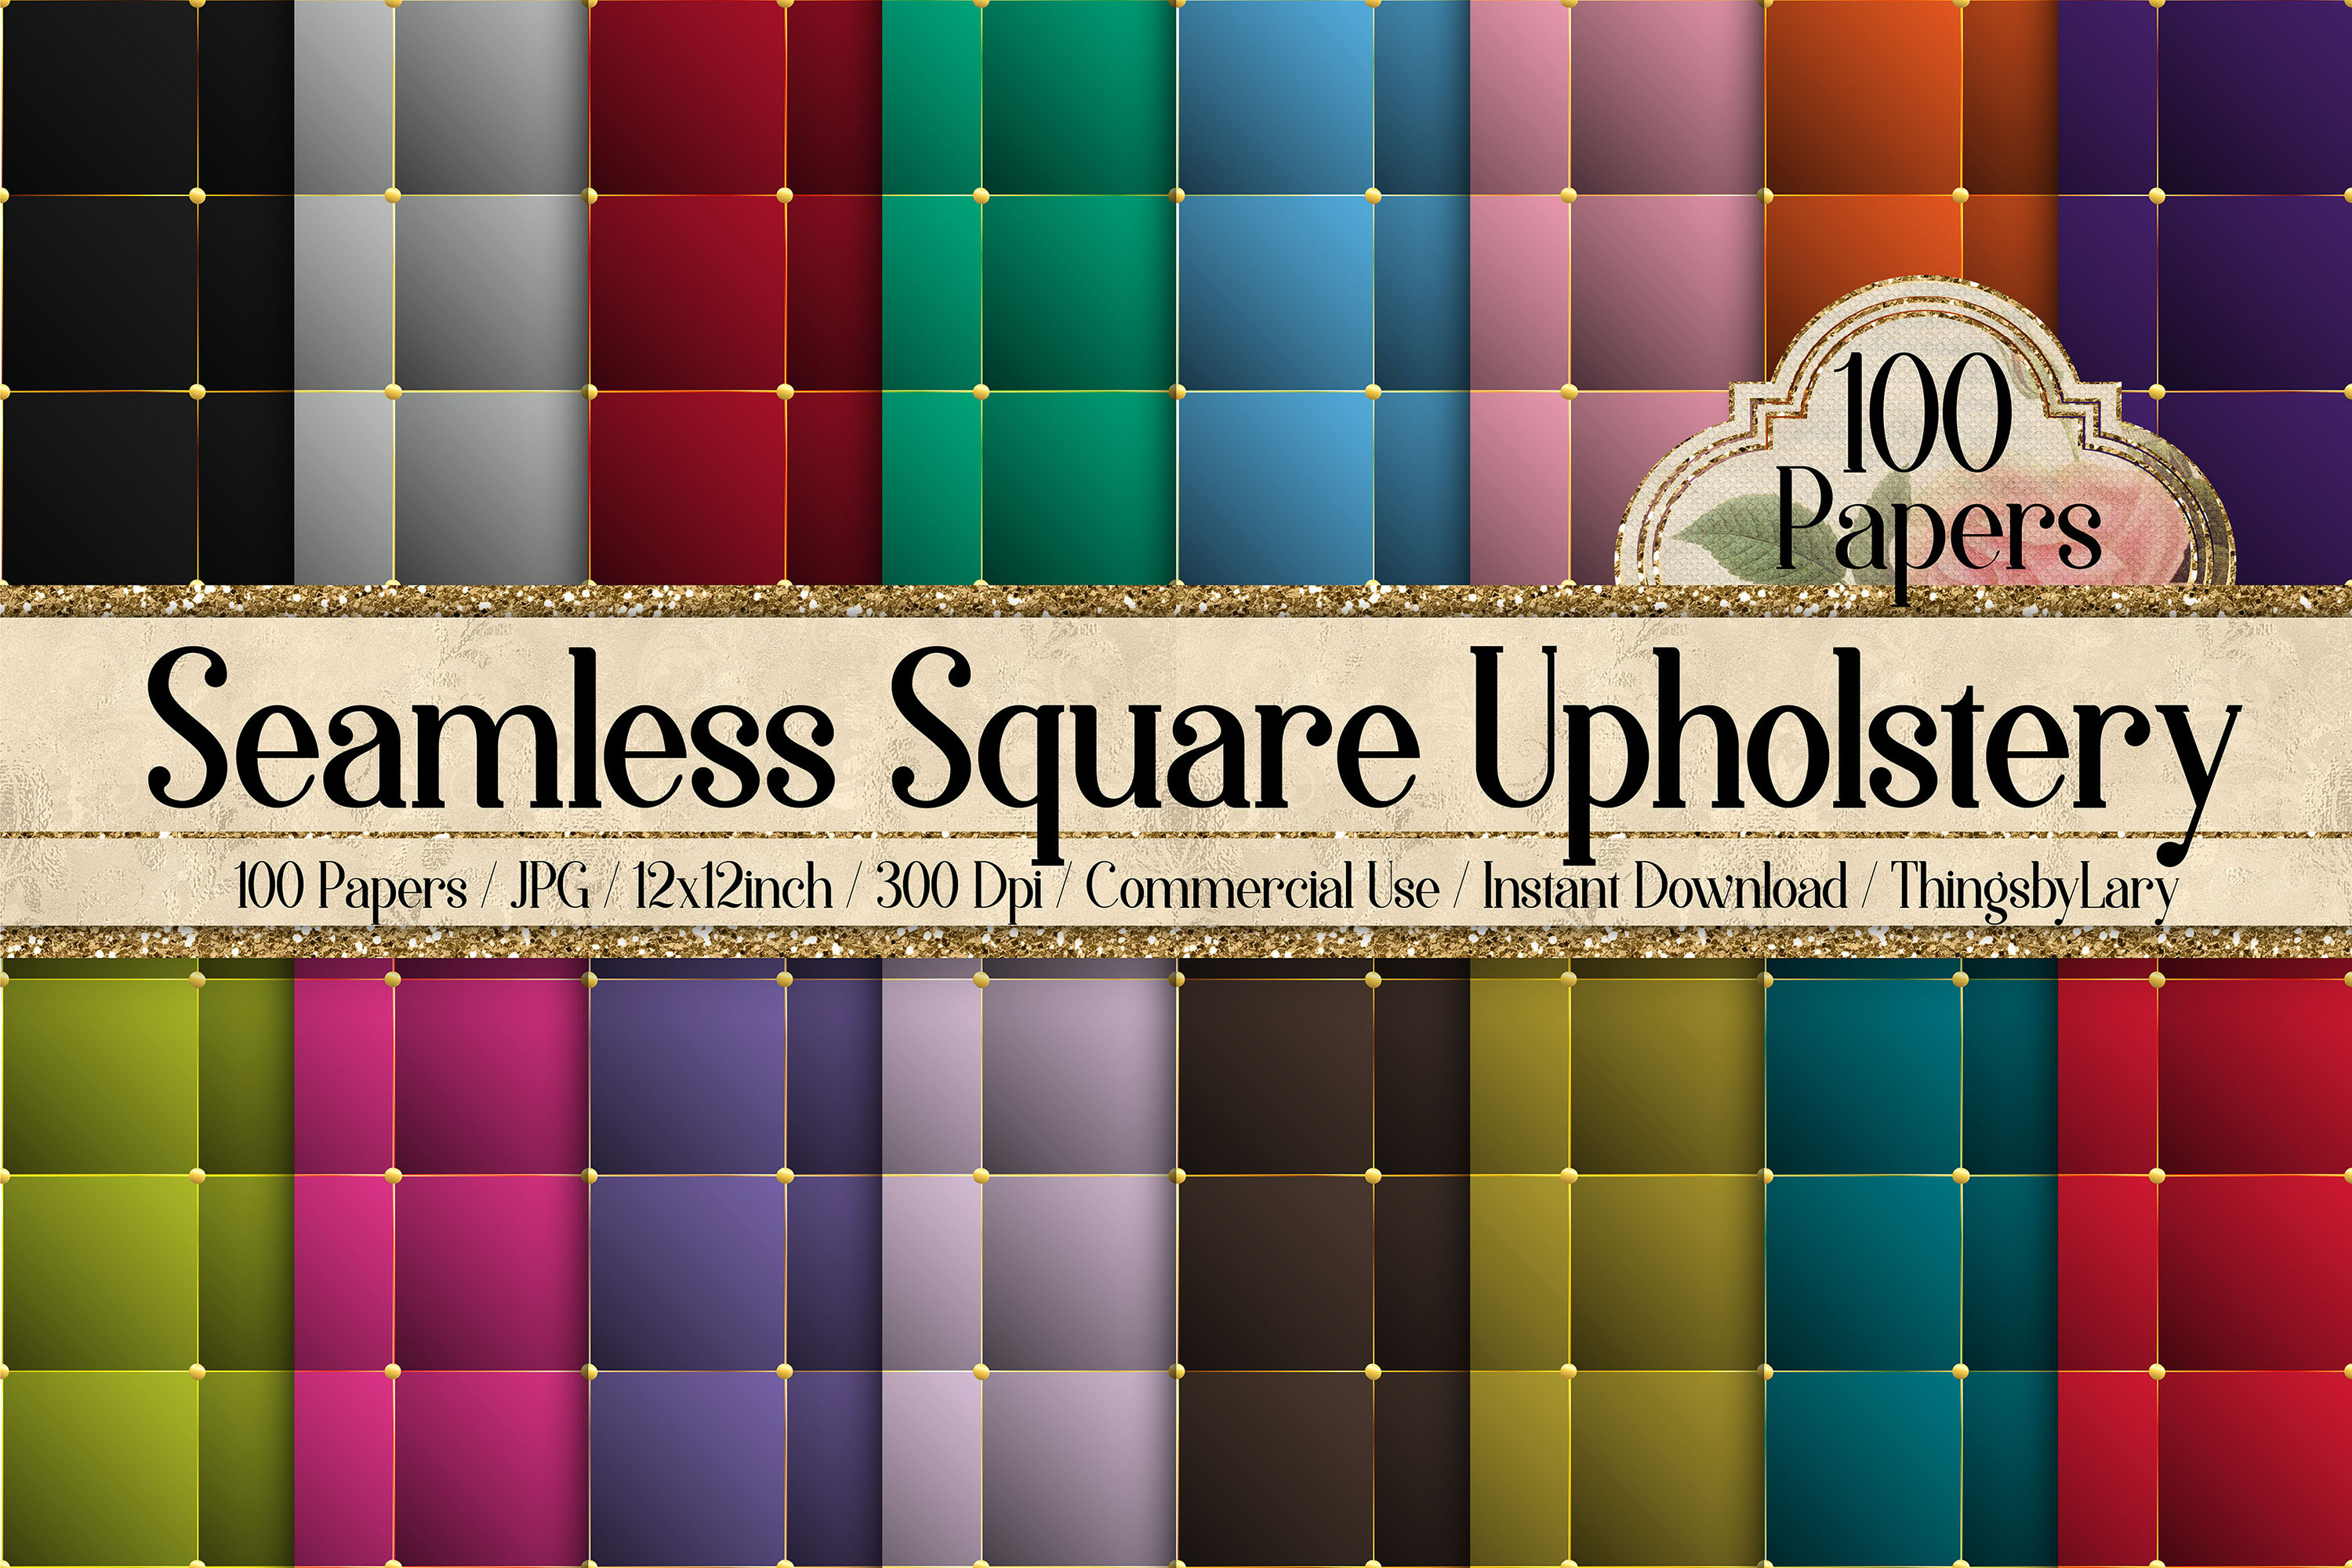 100 Seamless Square Upholstery Quilt Leather Digital Papers example image 1